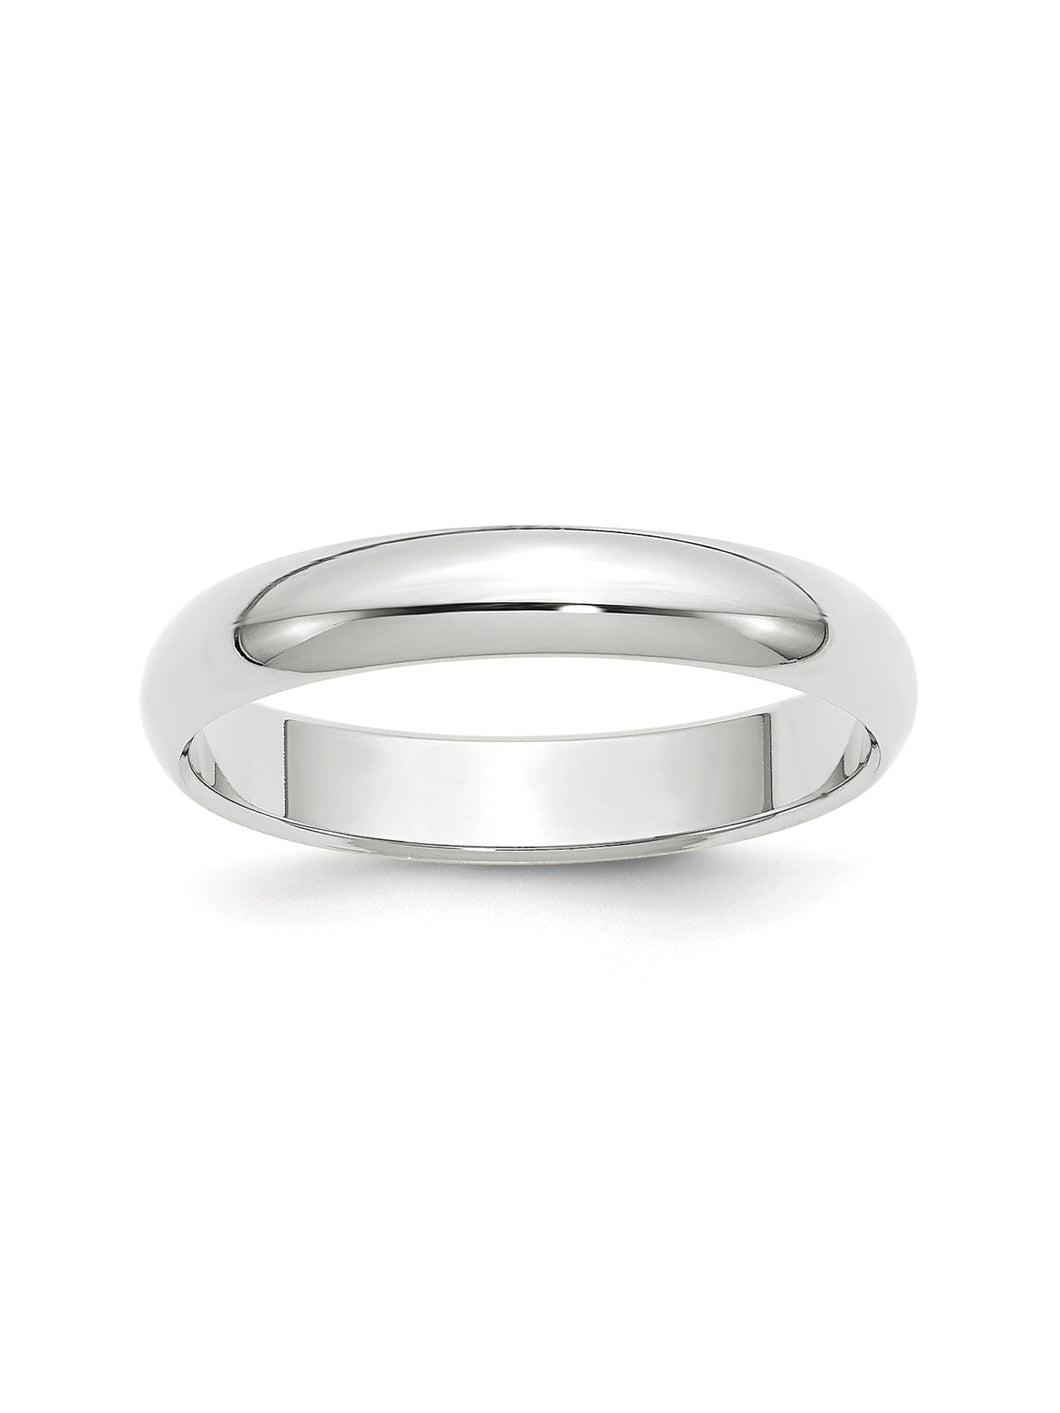 Standard Fit Domed Ring in 14k White Gold - 4 Mm